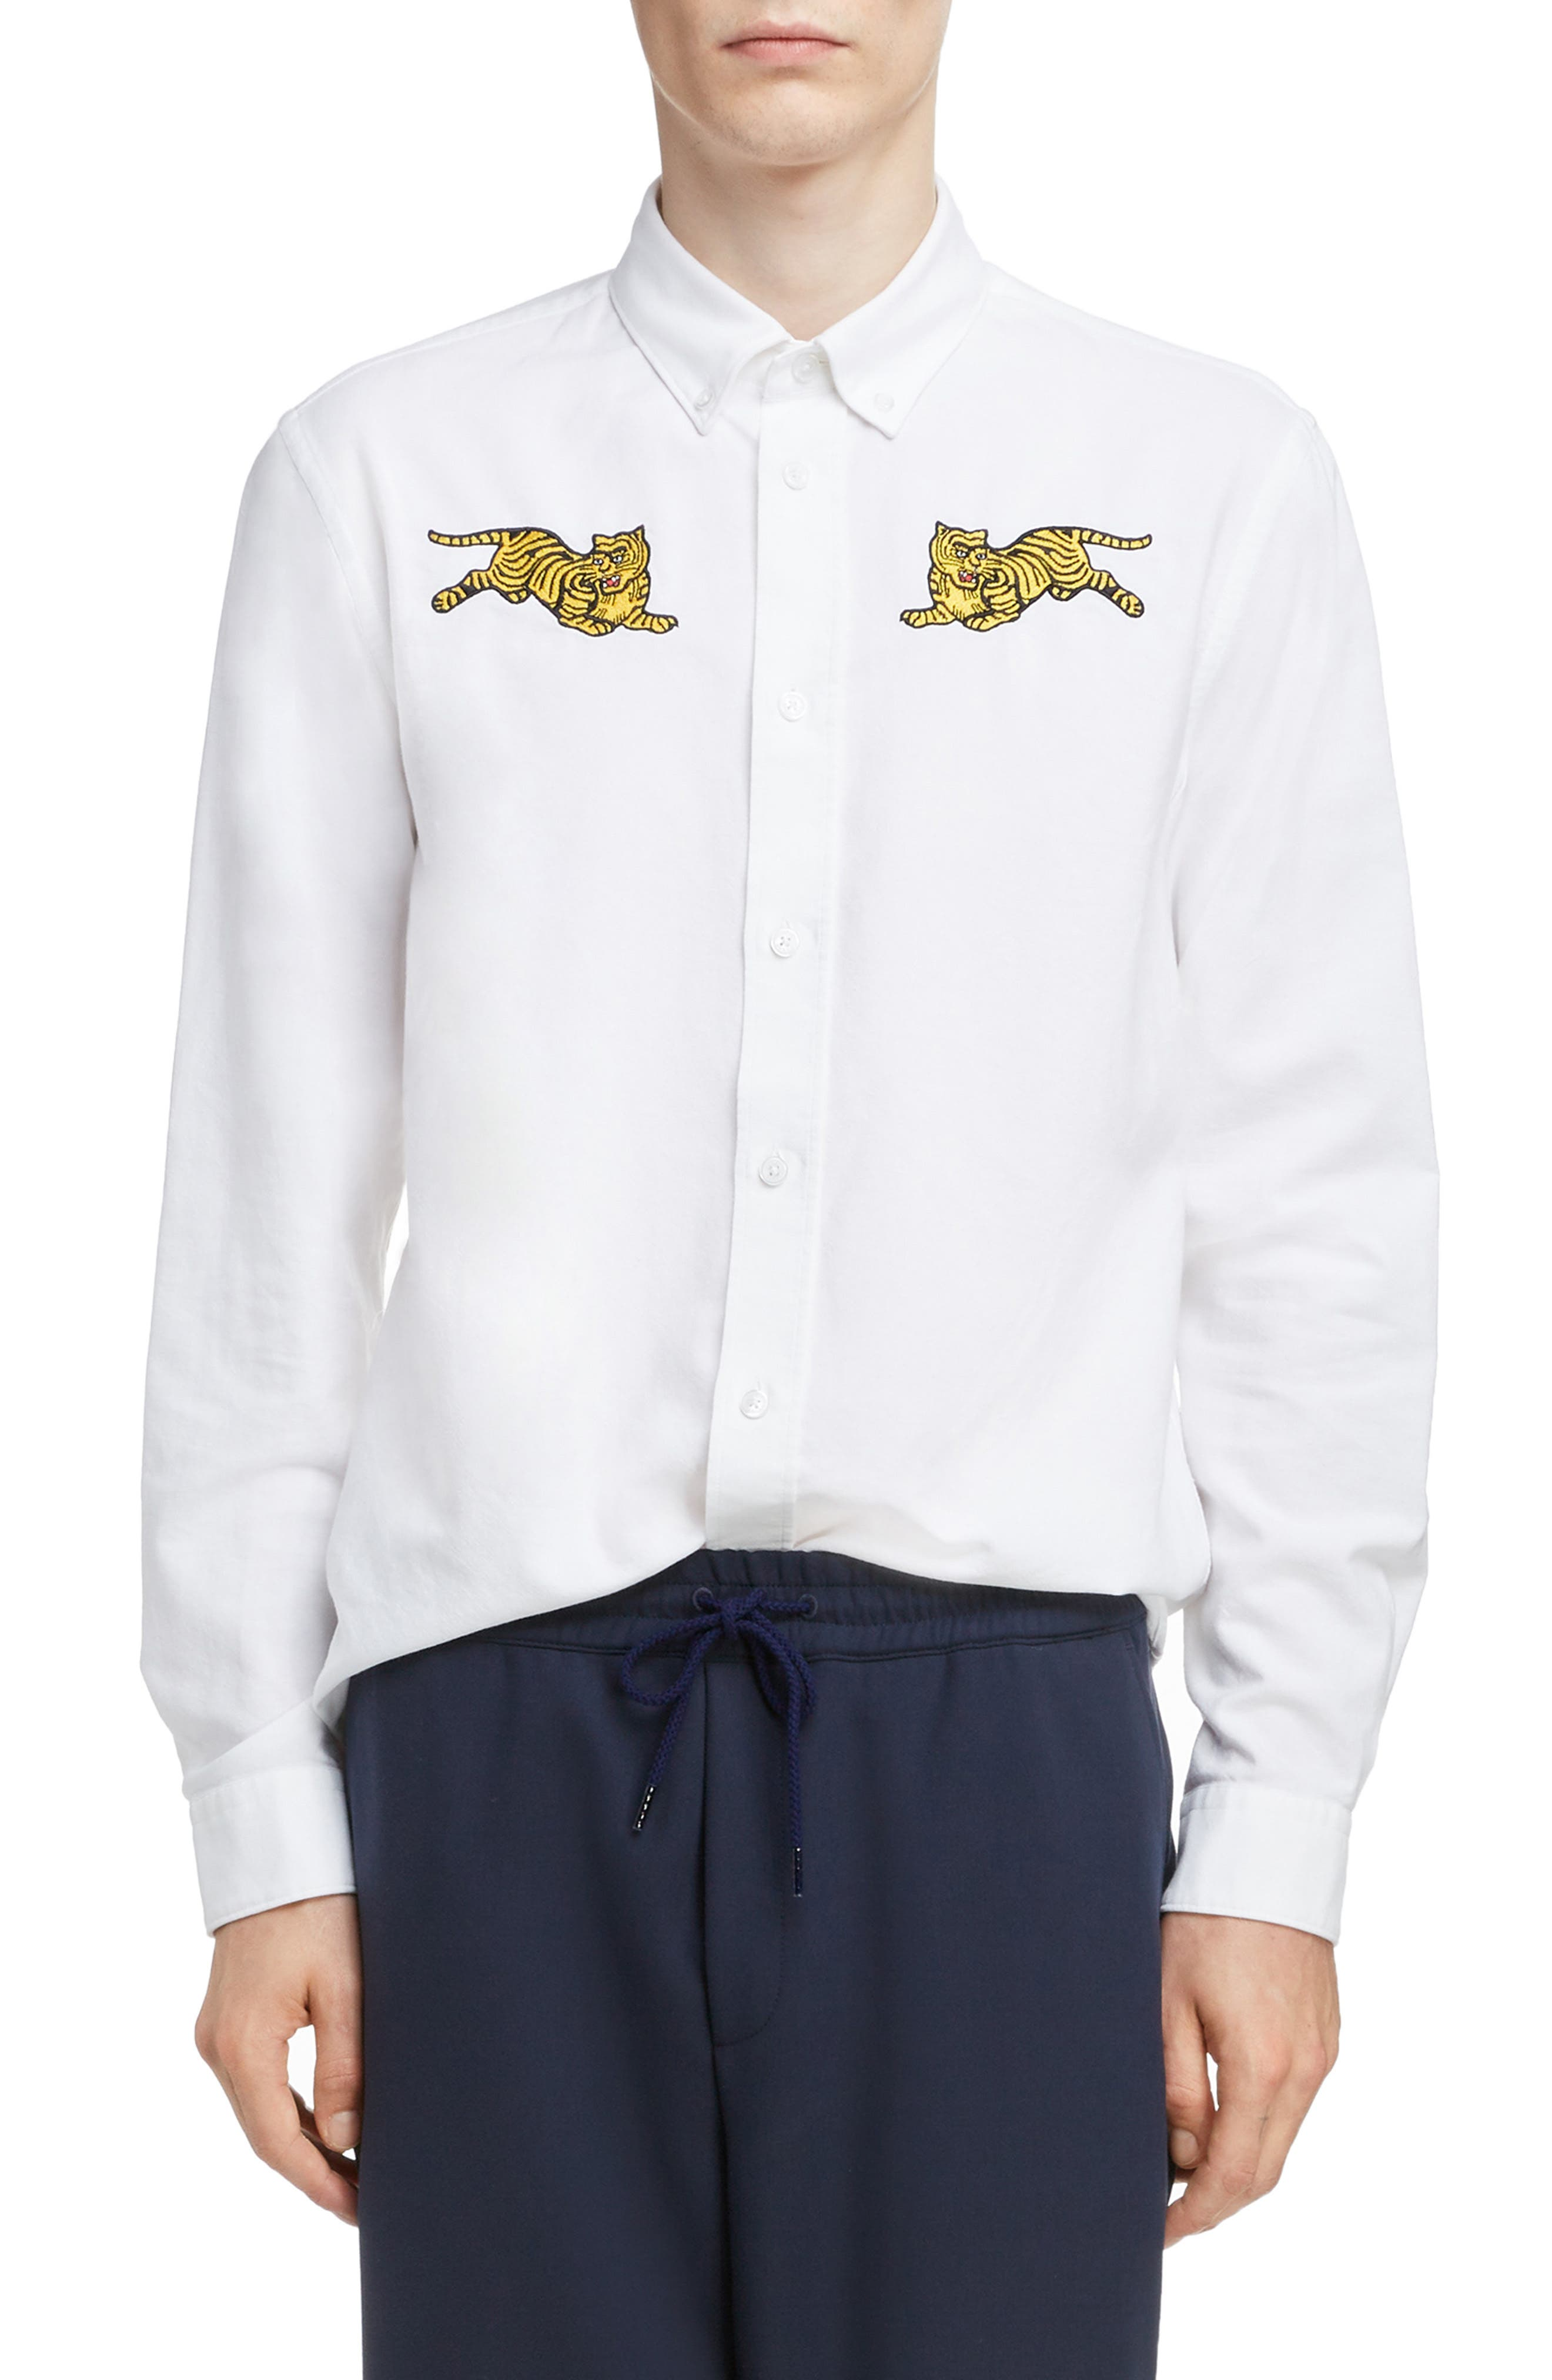 KENZO,                             Jumping Tiger Crest Woven Shirt,                             Alternate thumbnail 6, color,                             WHITE